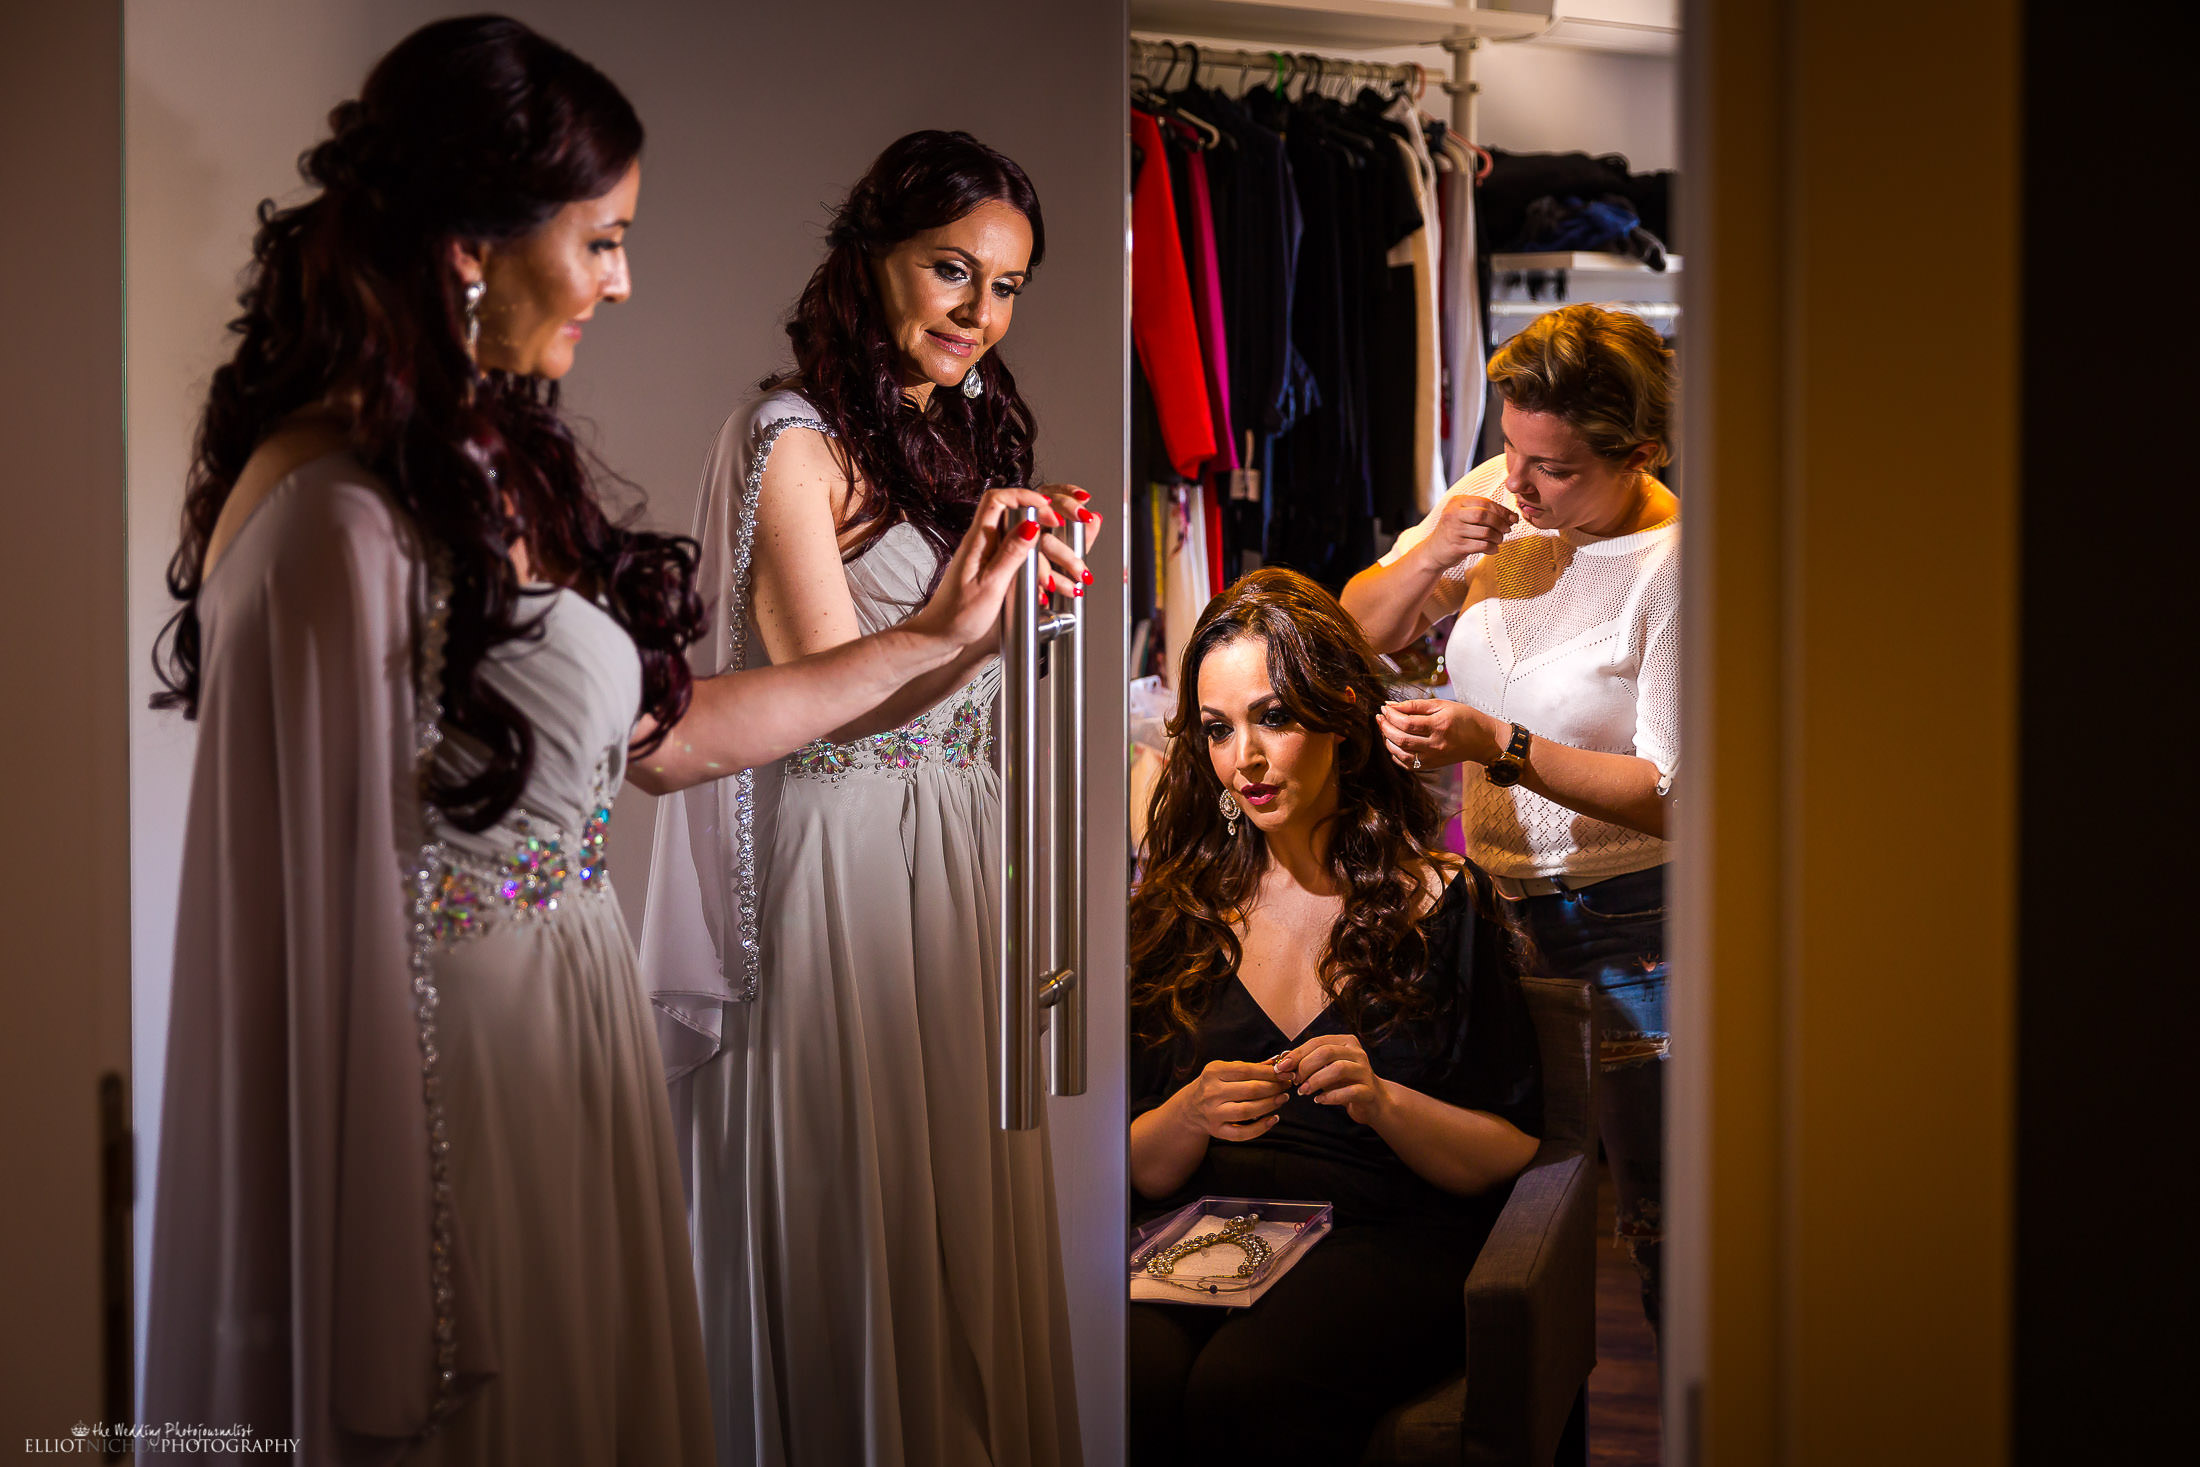 Bridal parties preparations. Photo by Elliot Nichol Photography.